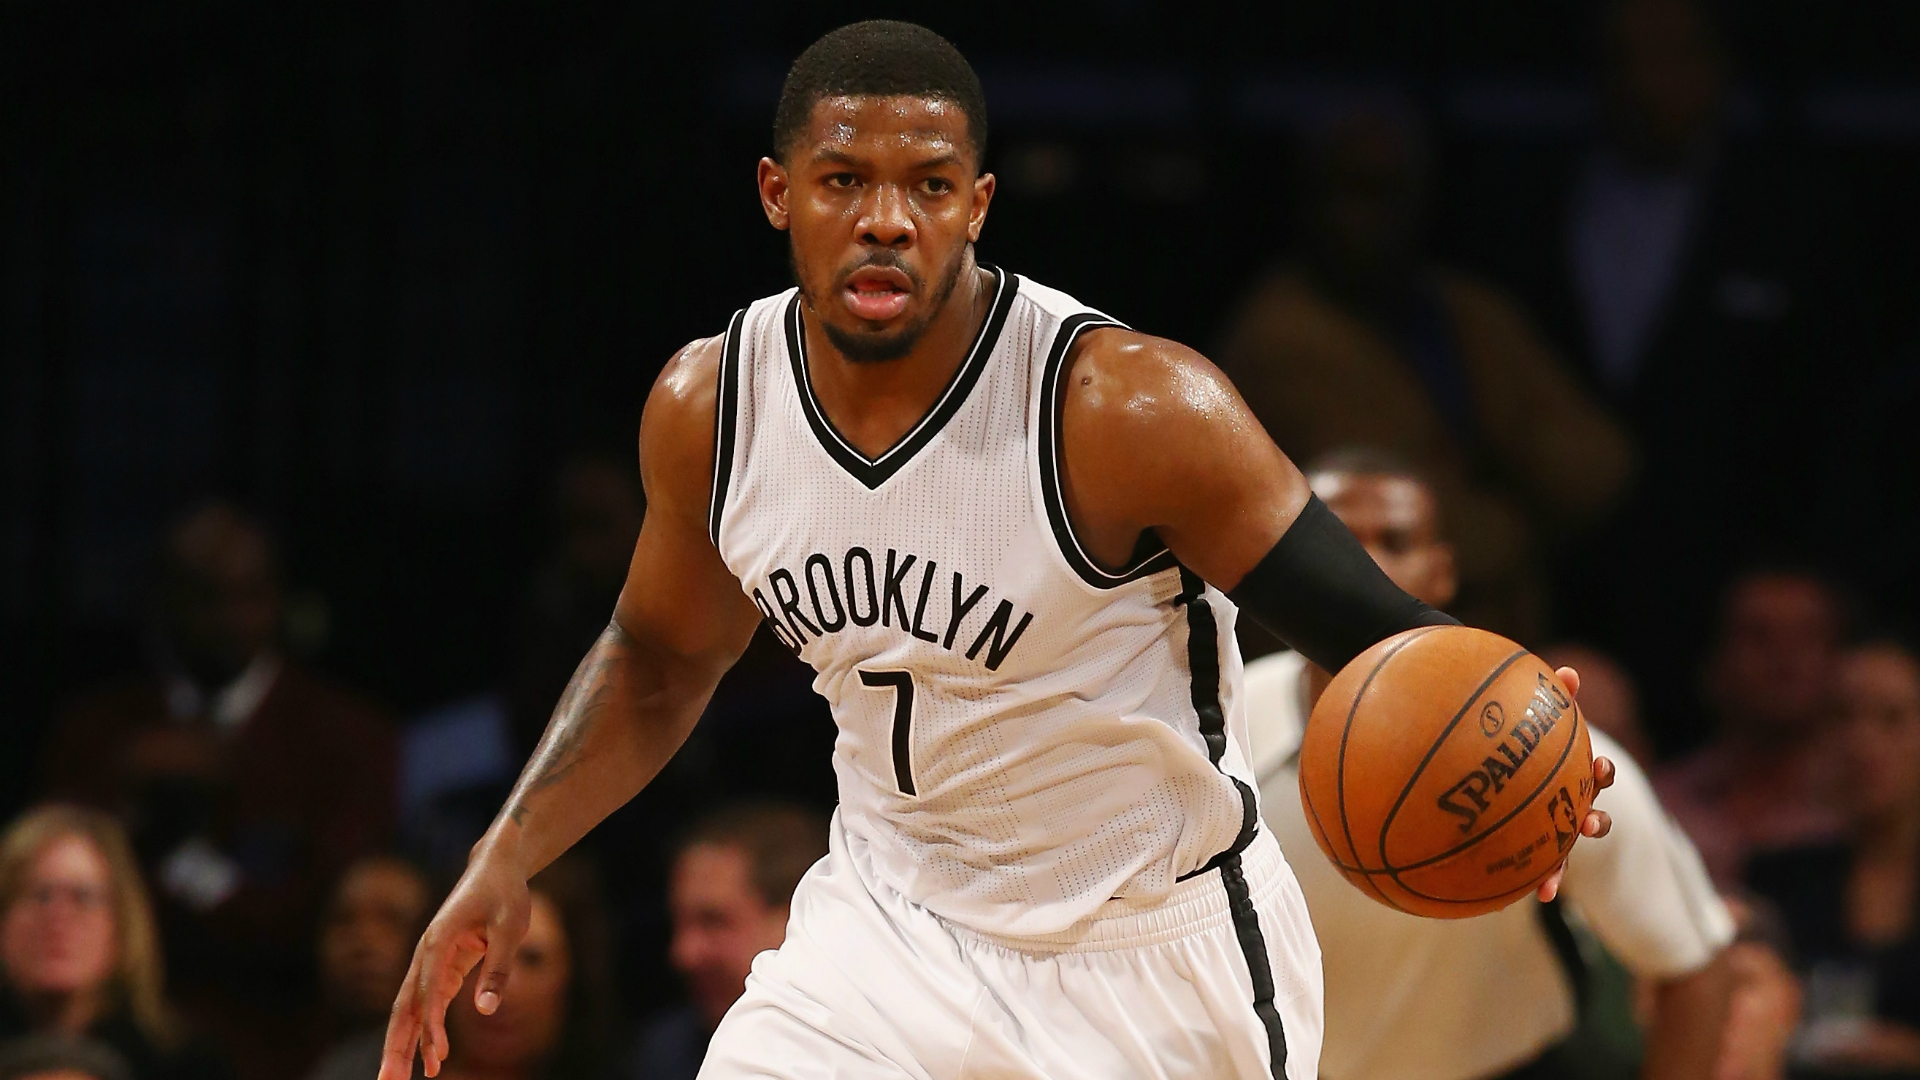 Joe Johnson expected to sign with Rockets after Kings buyout, per report